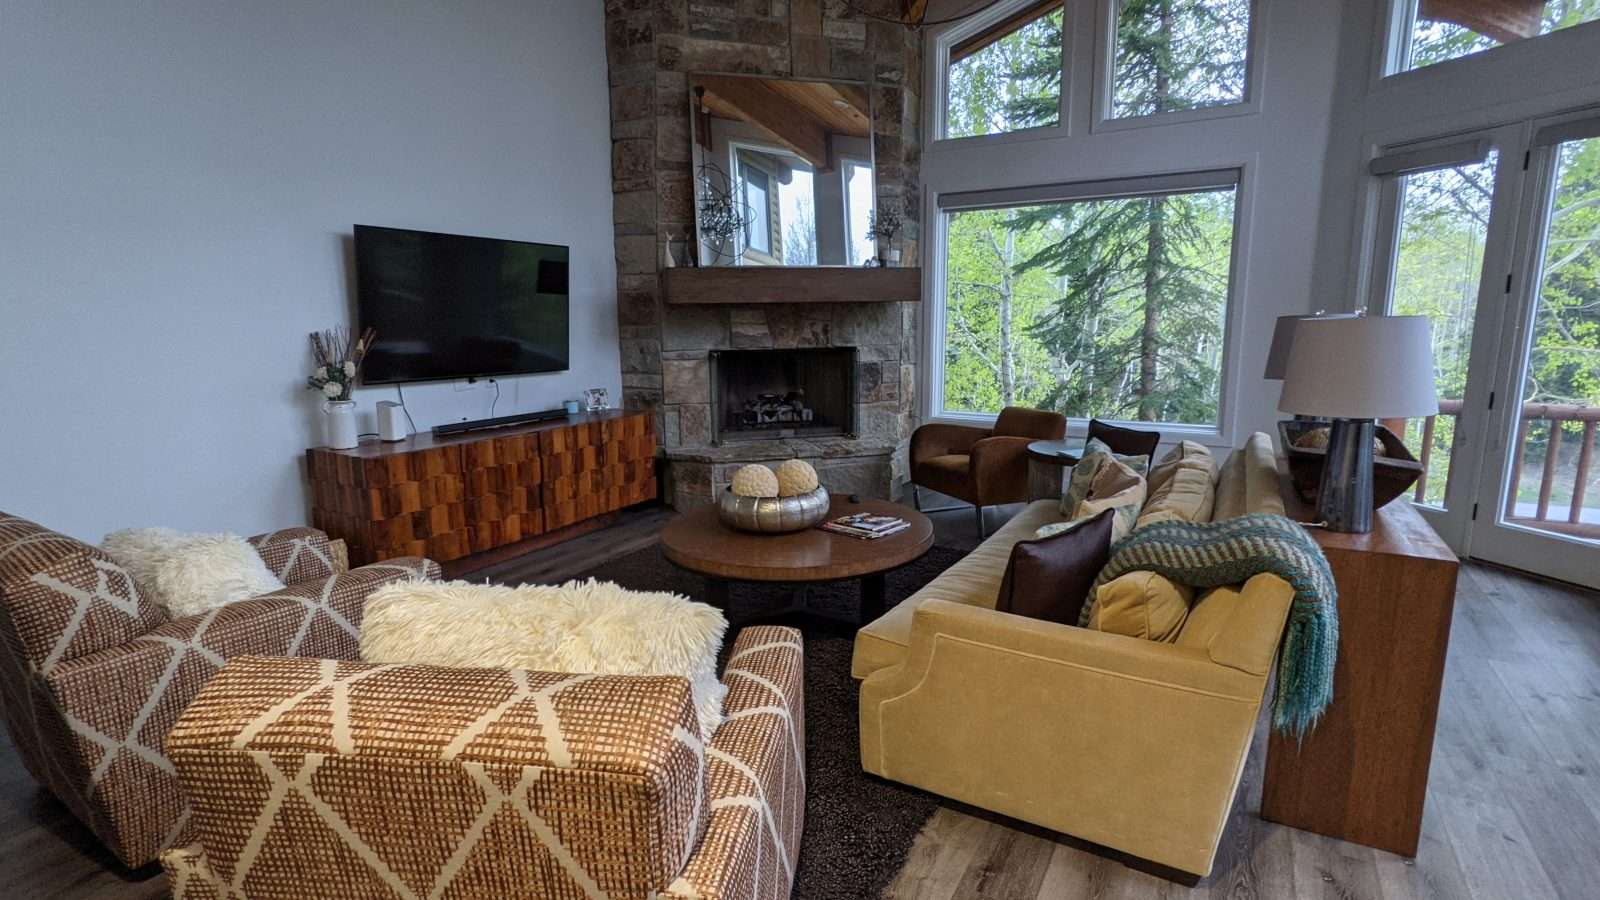 Living room of vacation rental in Park City